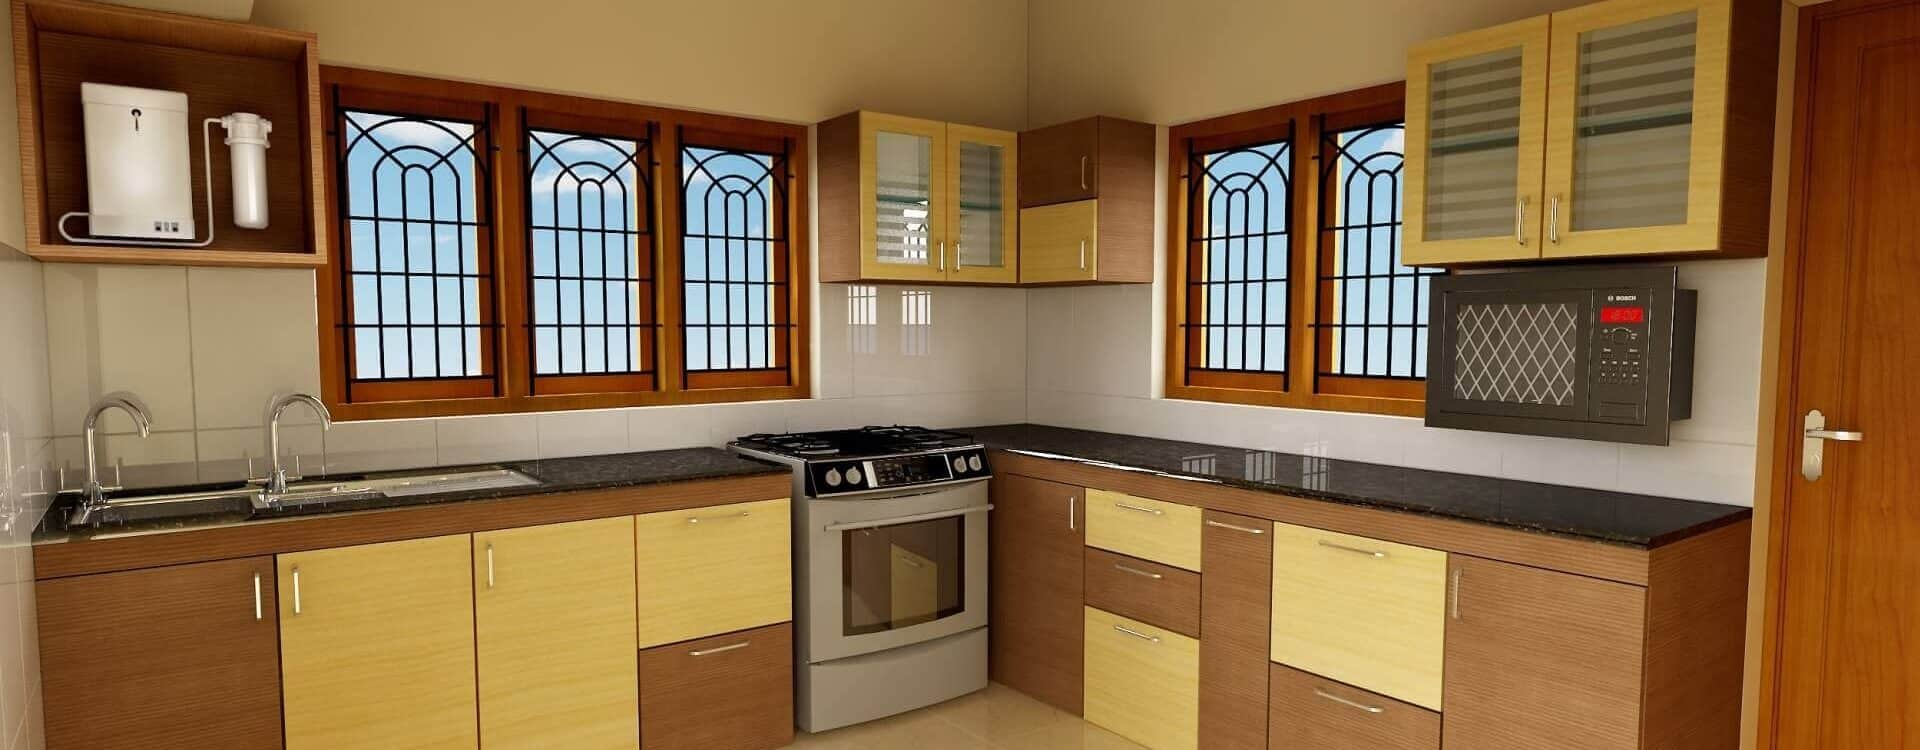 Proposed Kitchen Prospective ( 2016 )